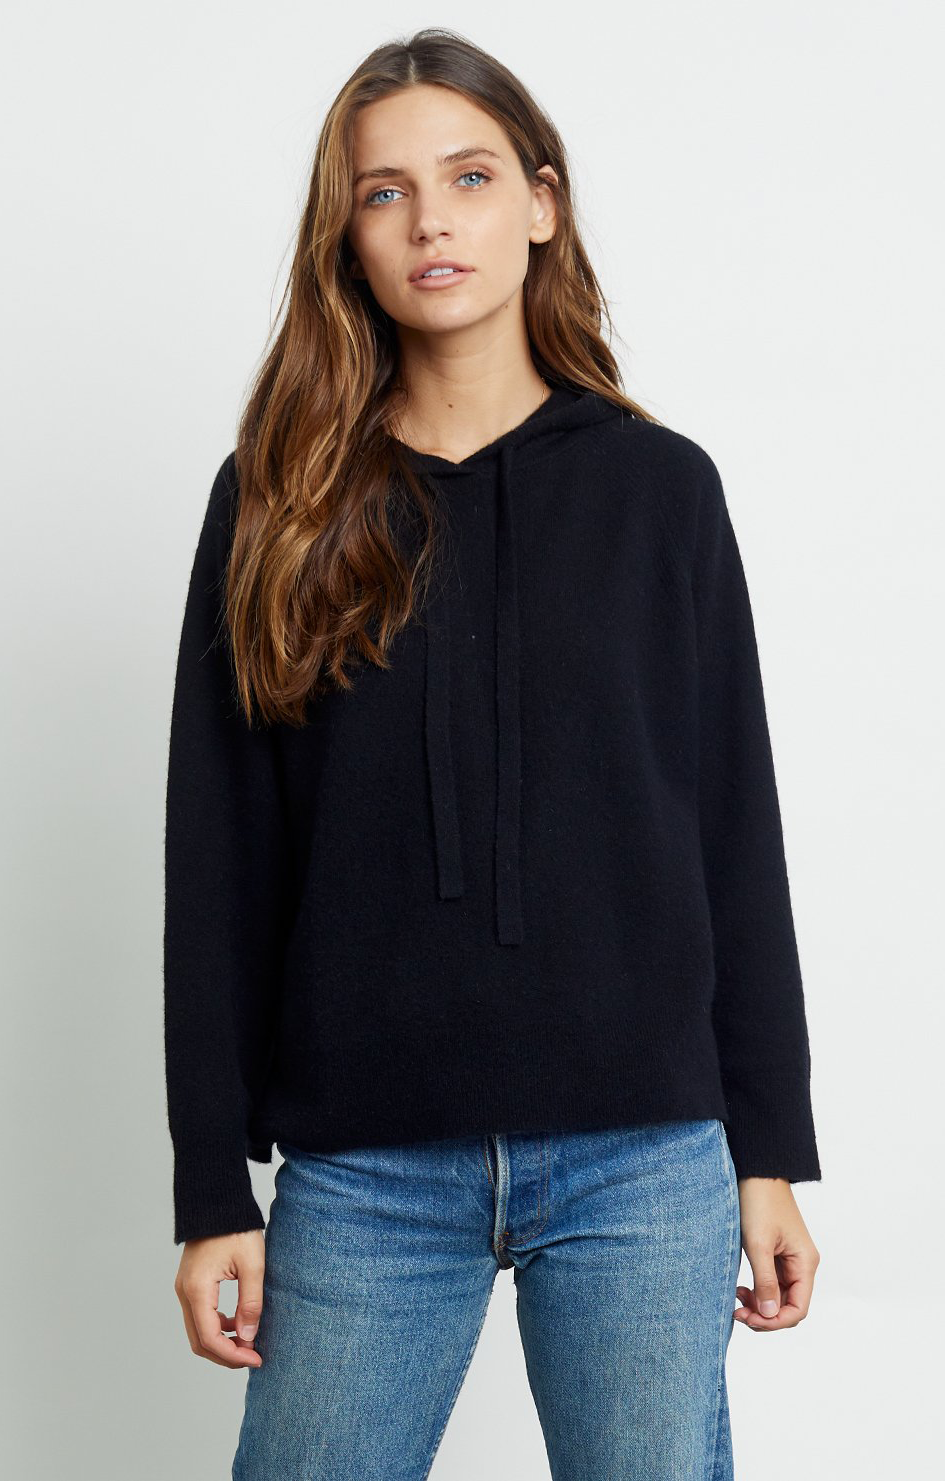 Aster Sweater - Black